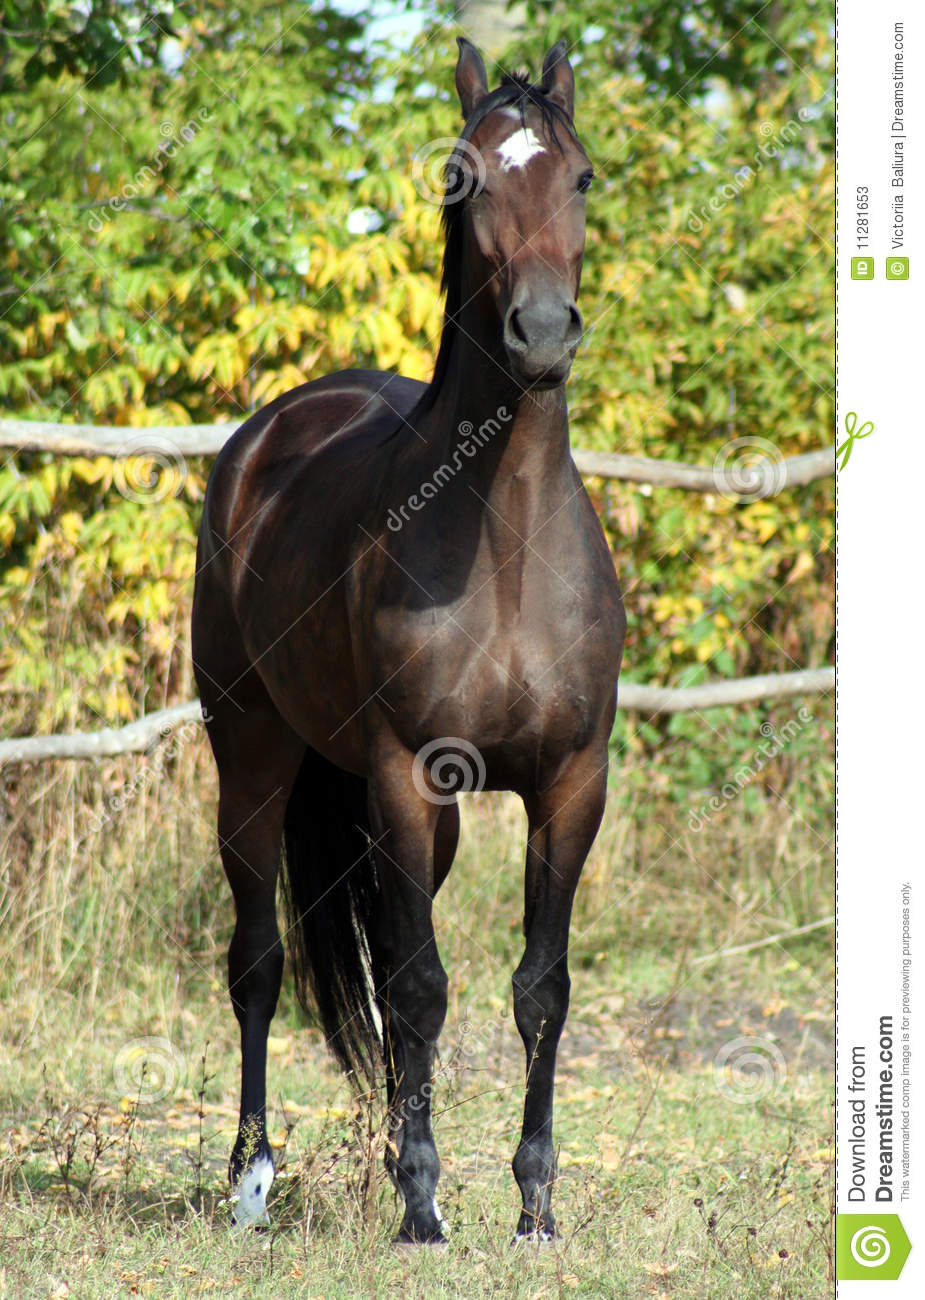 Race ukrainienne de cheval image stock image du libert for Multiplication cheval